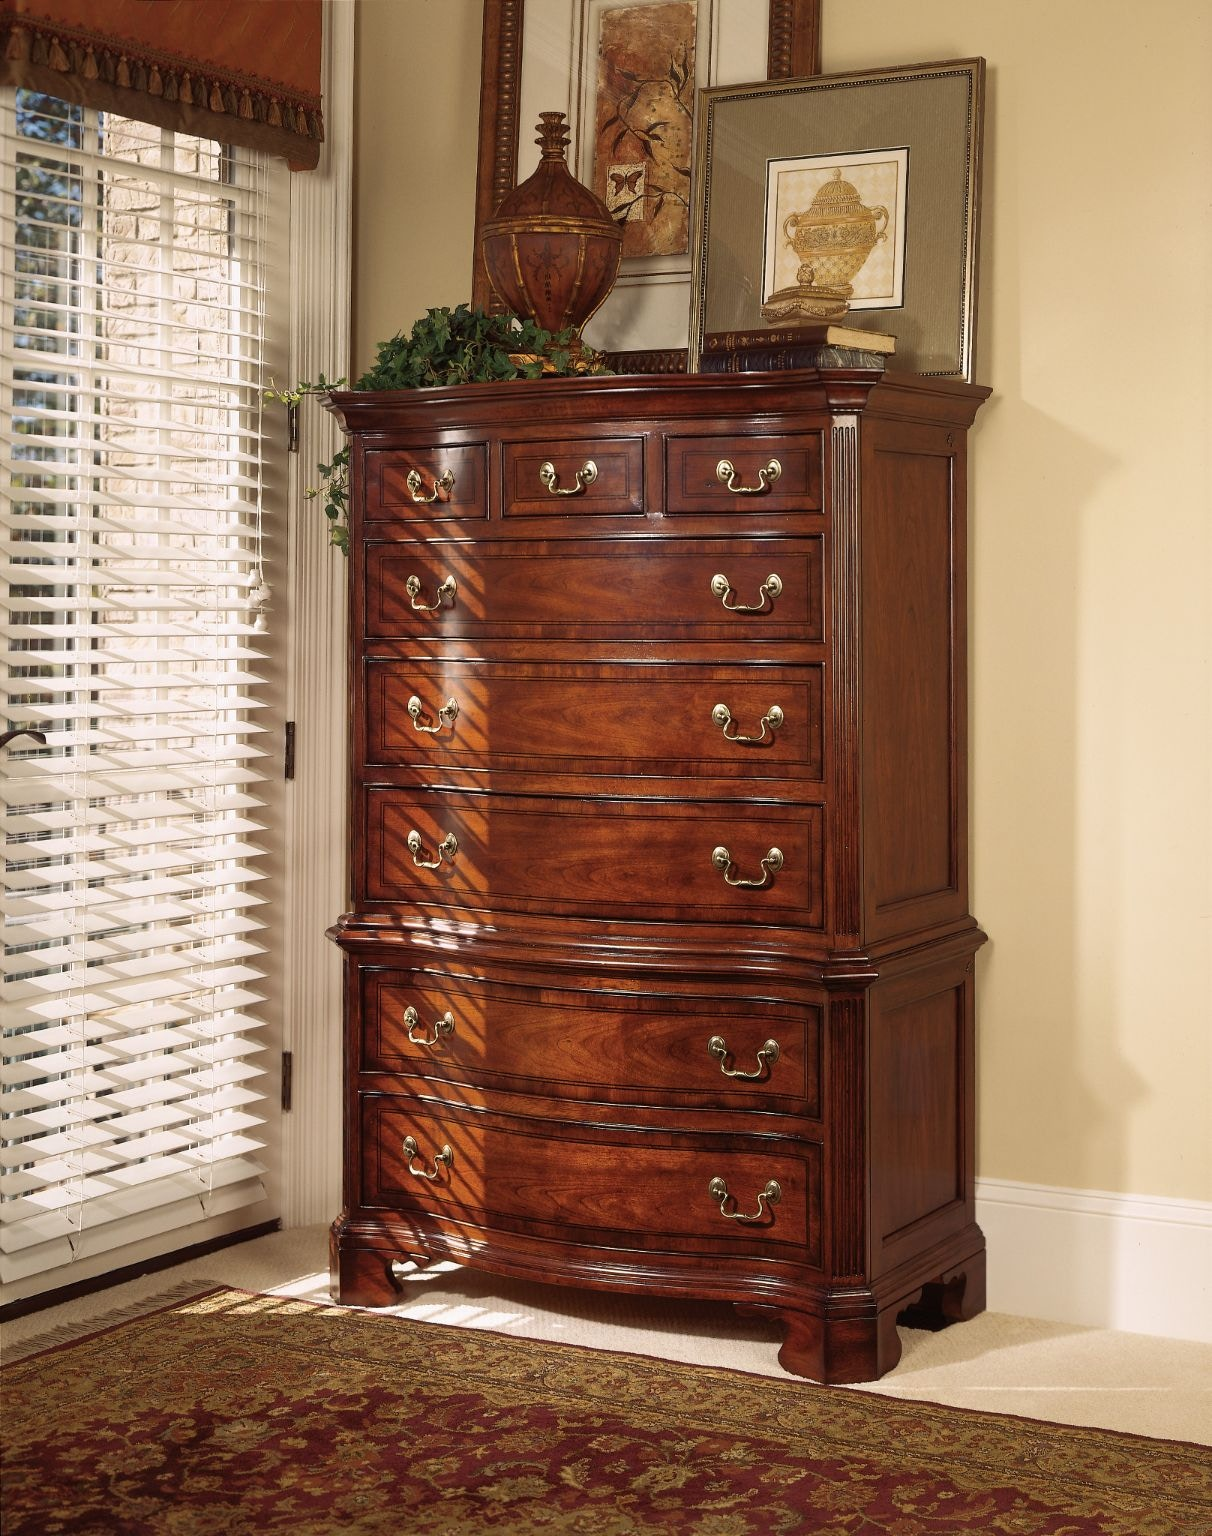 American Drew Cherry Grove Dining Room American Drew Bedroom Chest On Chest 791 230 Wholesale